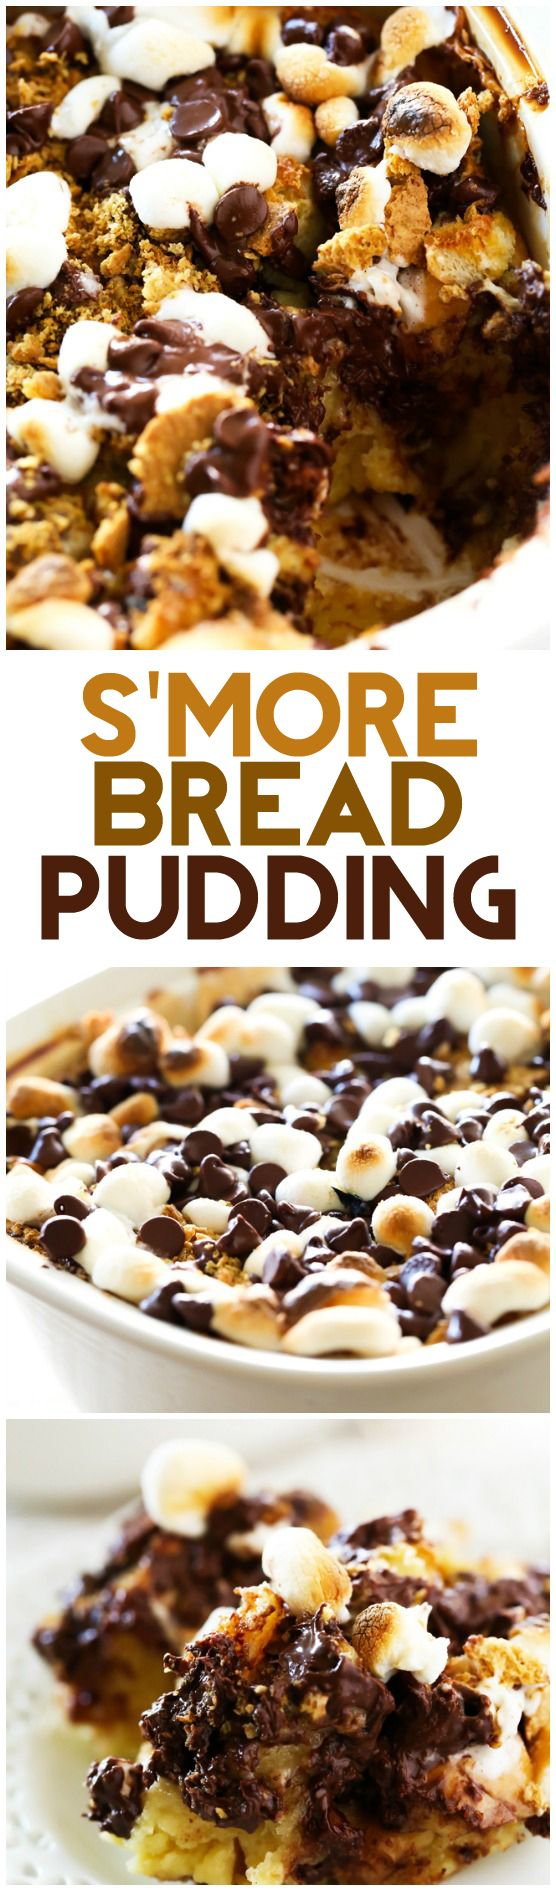 S'more Bread Pudding... This is one incredible recipe! A summer campfire classic is reinvented into one memorable dessert! Gooey marshmallows, melted chocolate and graham cracker are packed into soft bread!